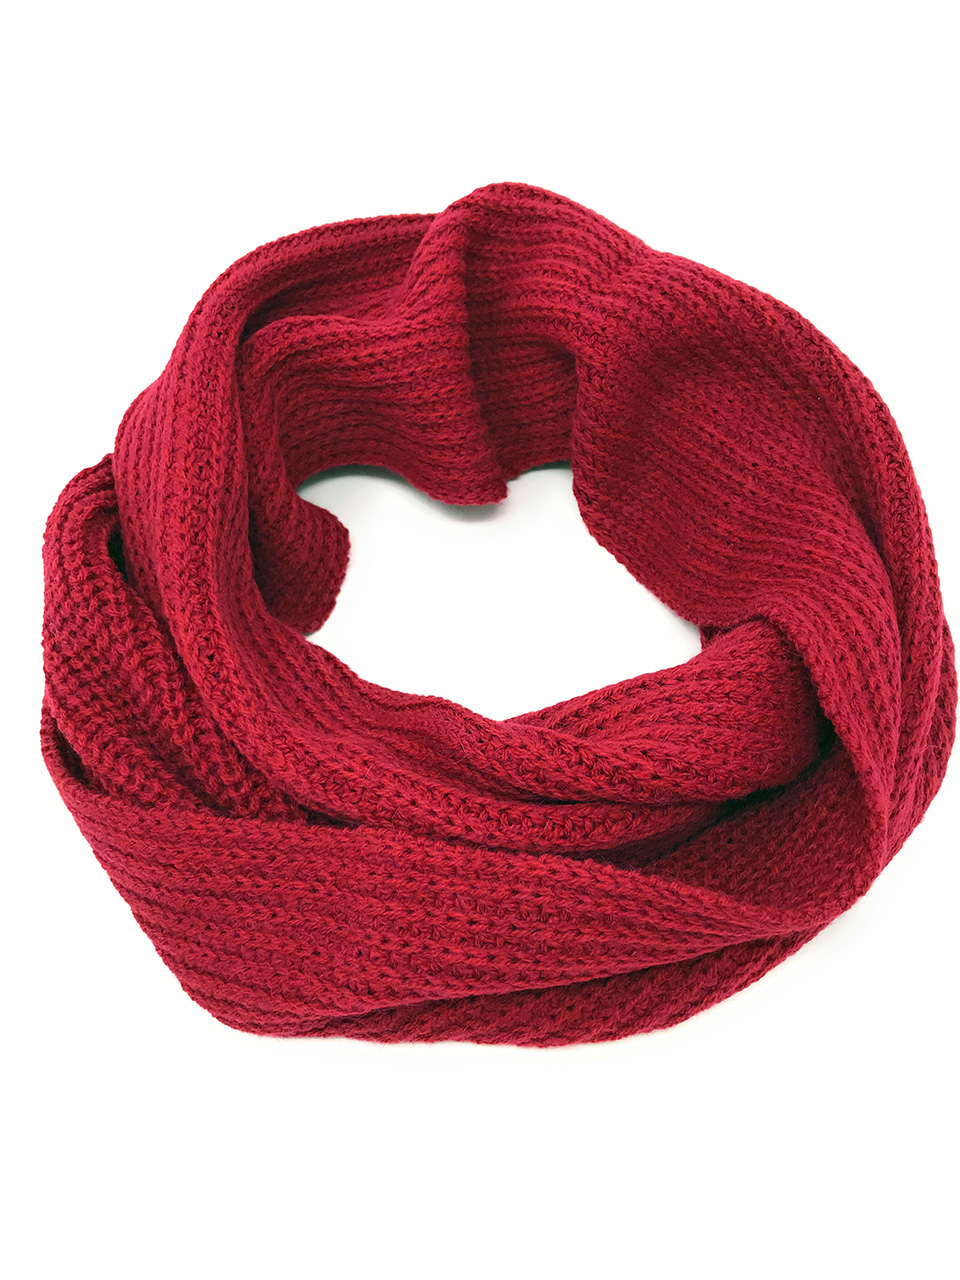 Hand Knit Infinity Circular Scarf / Snood - Alpaca Wool & Acrylic Snood only